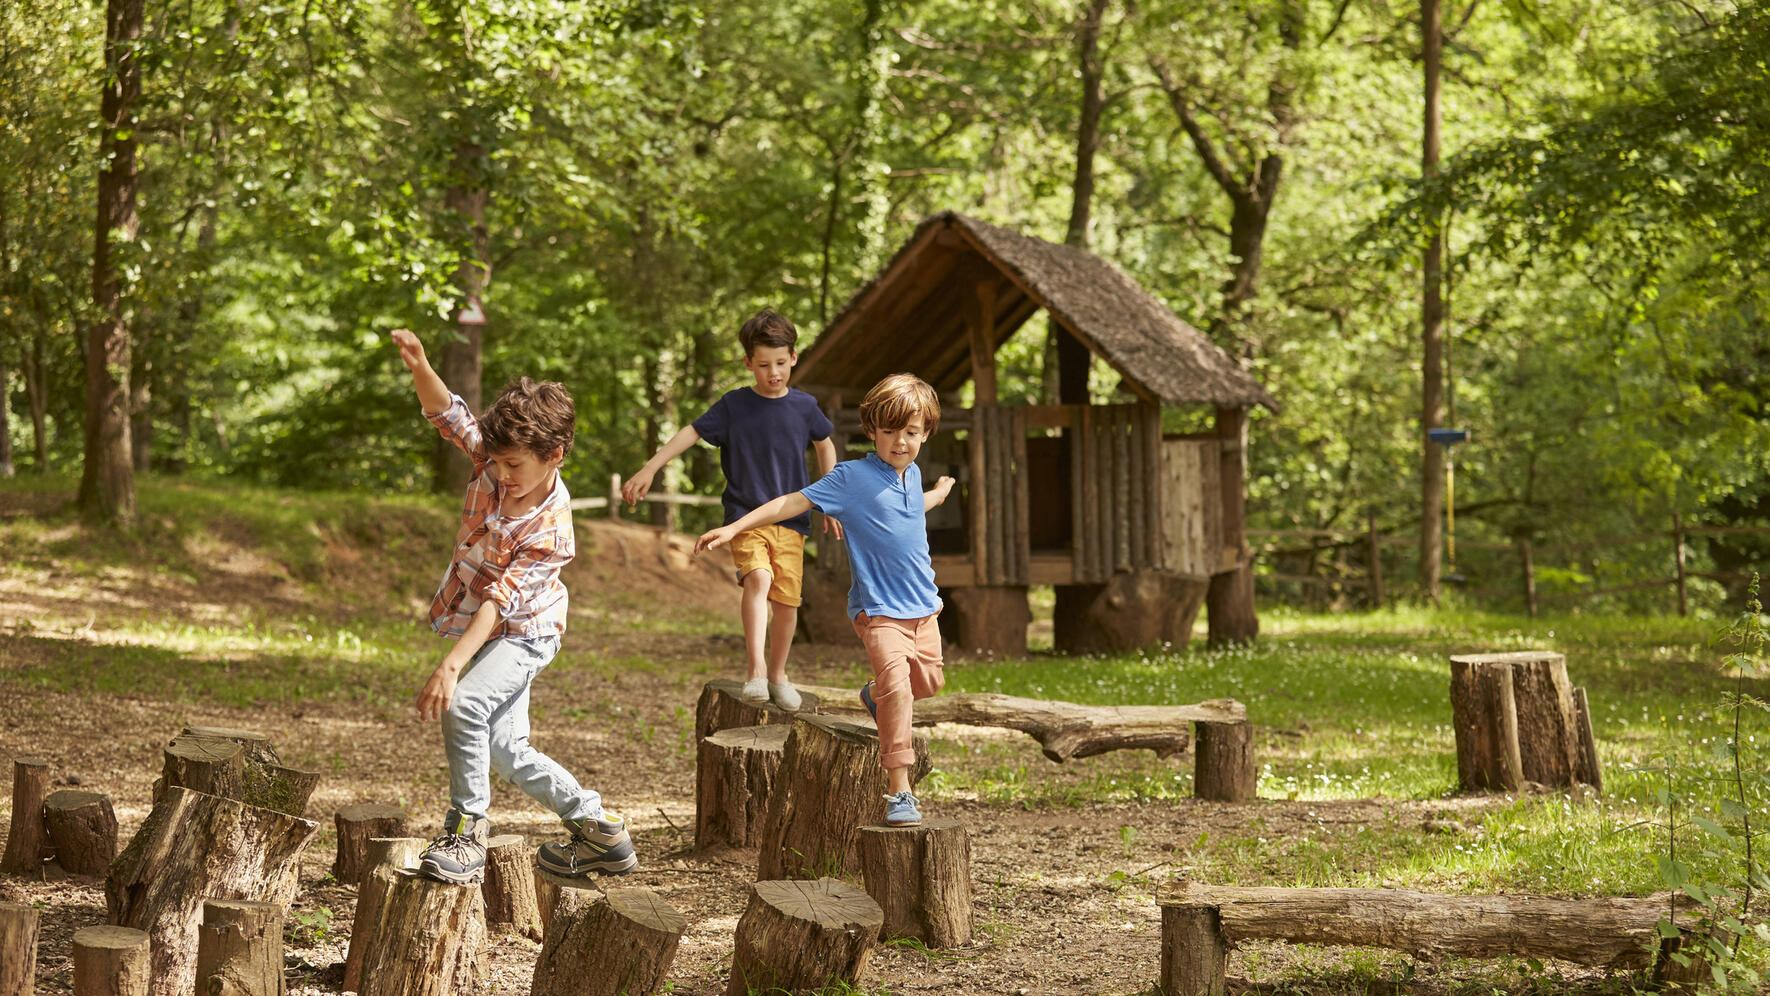 Boys playing on tree stumps in forest. Friends are wearing casuals. They are spending leisure time together.